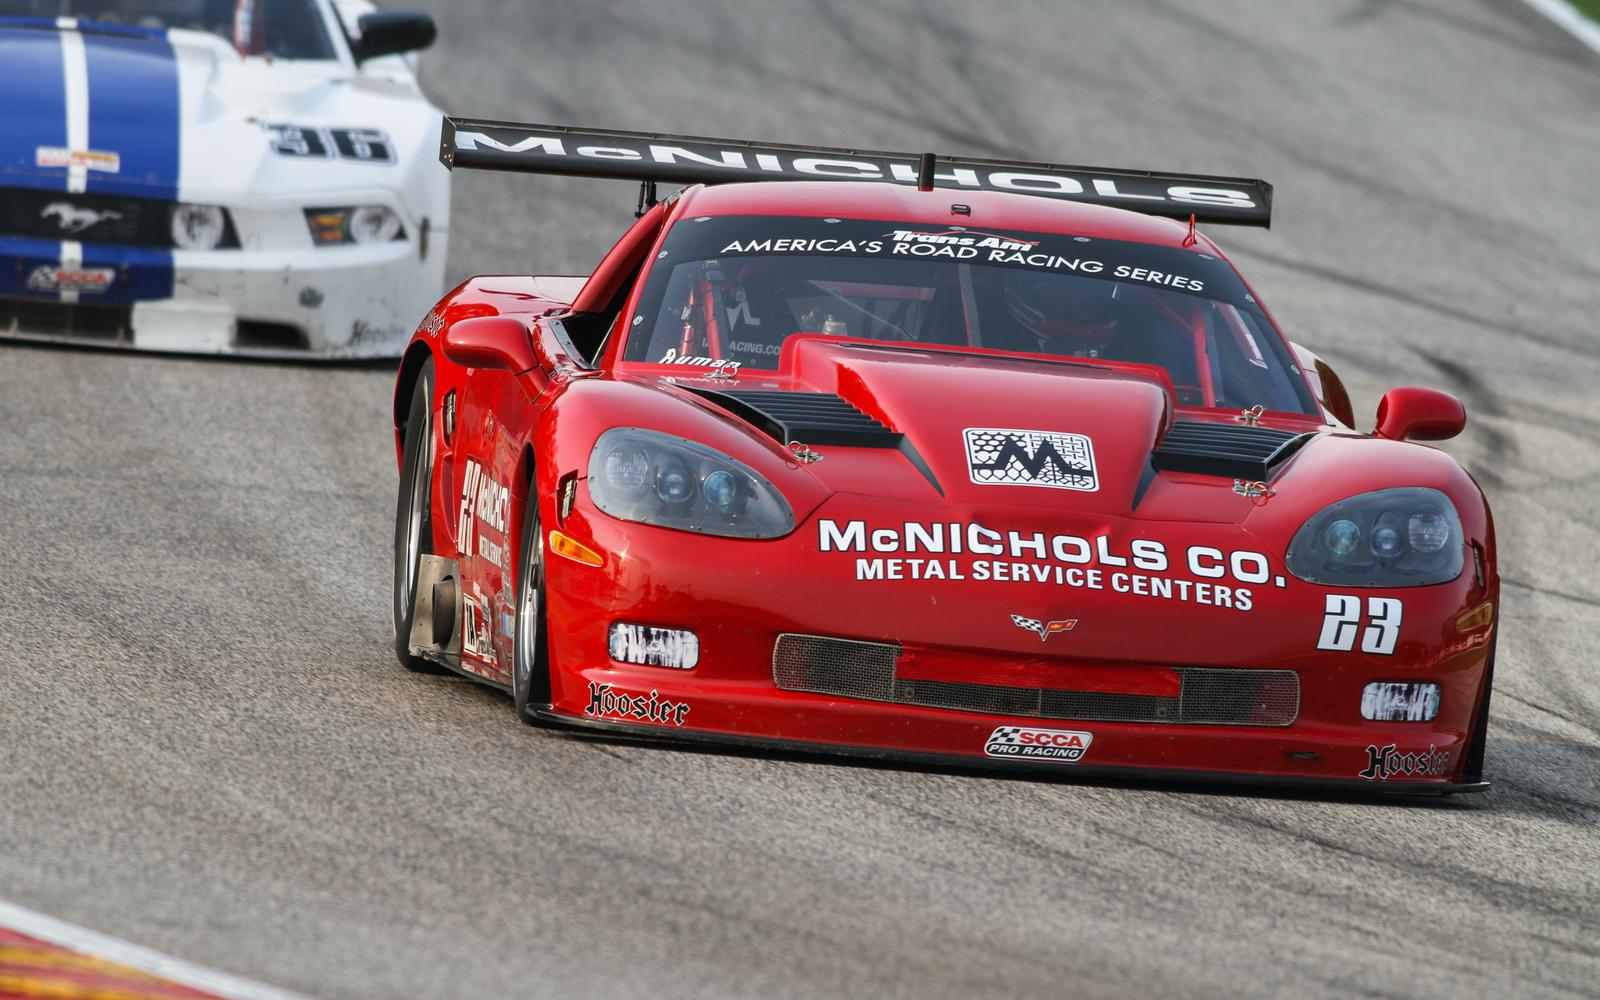 P6 for Ruman at Wet and Wild Road America Trans Am Race